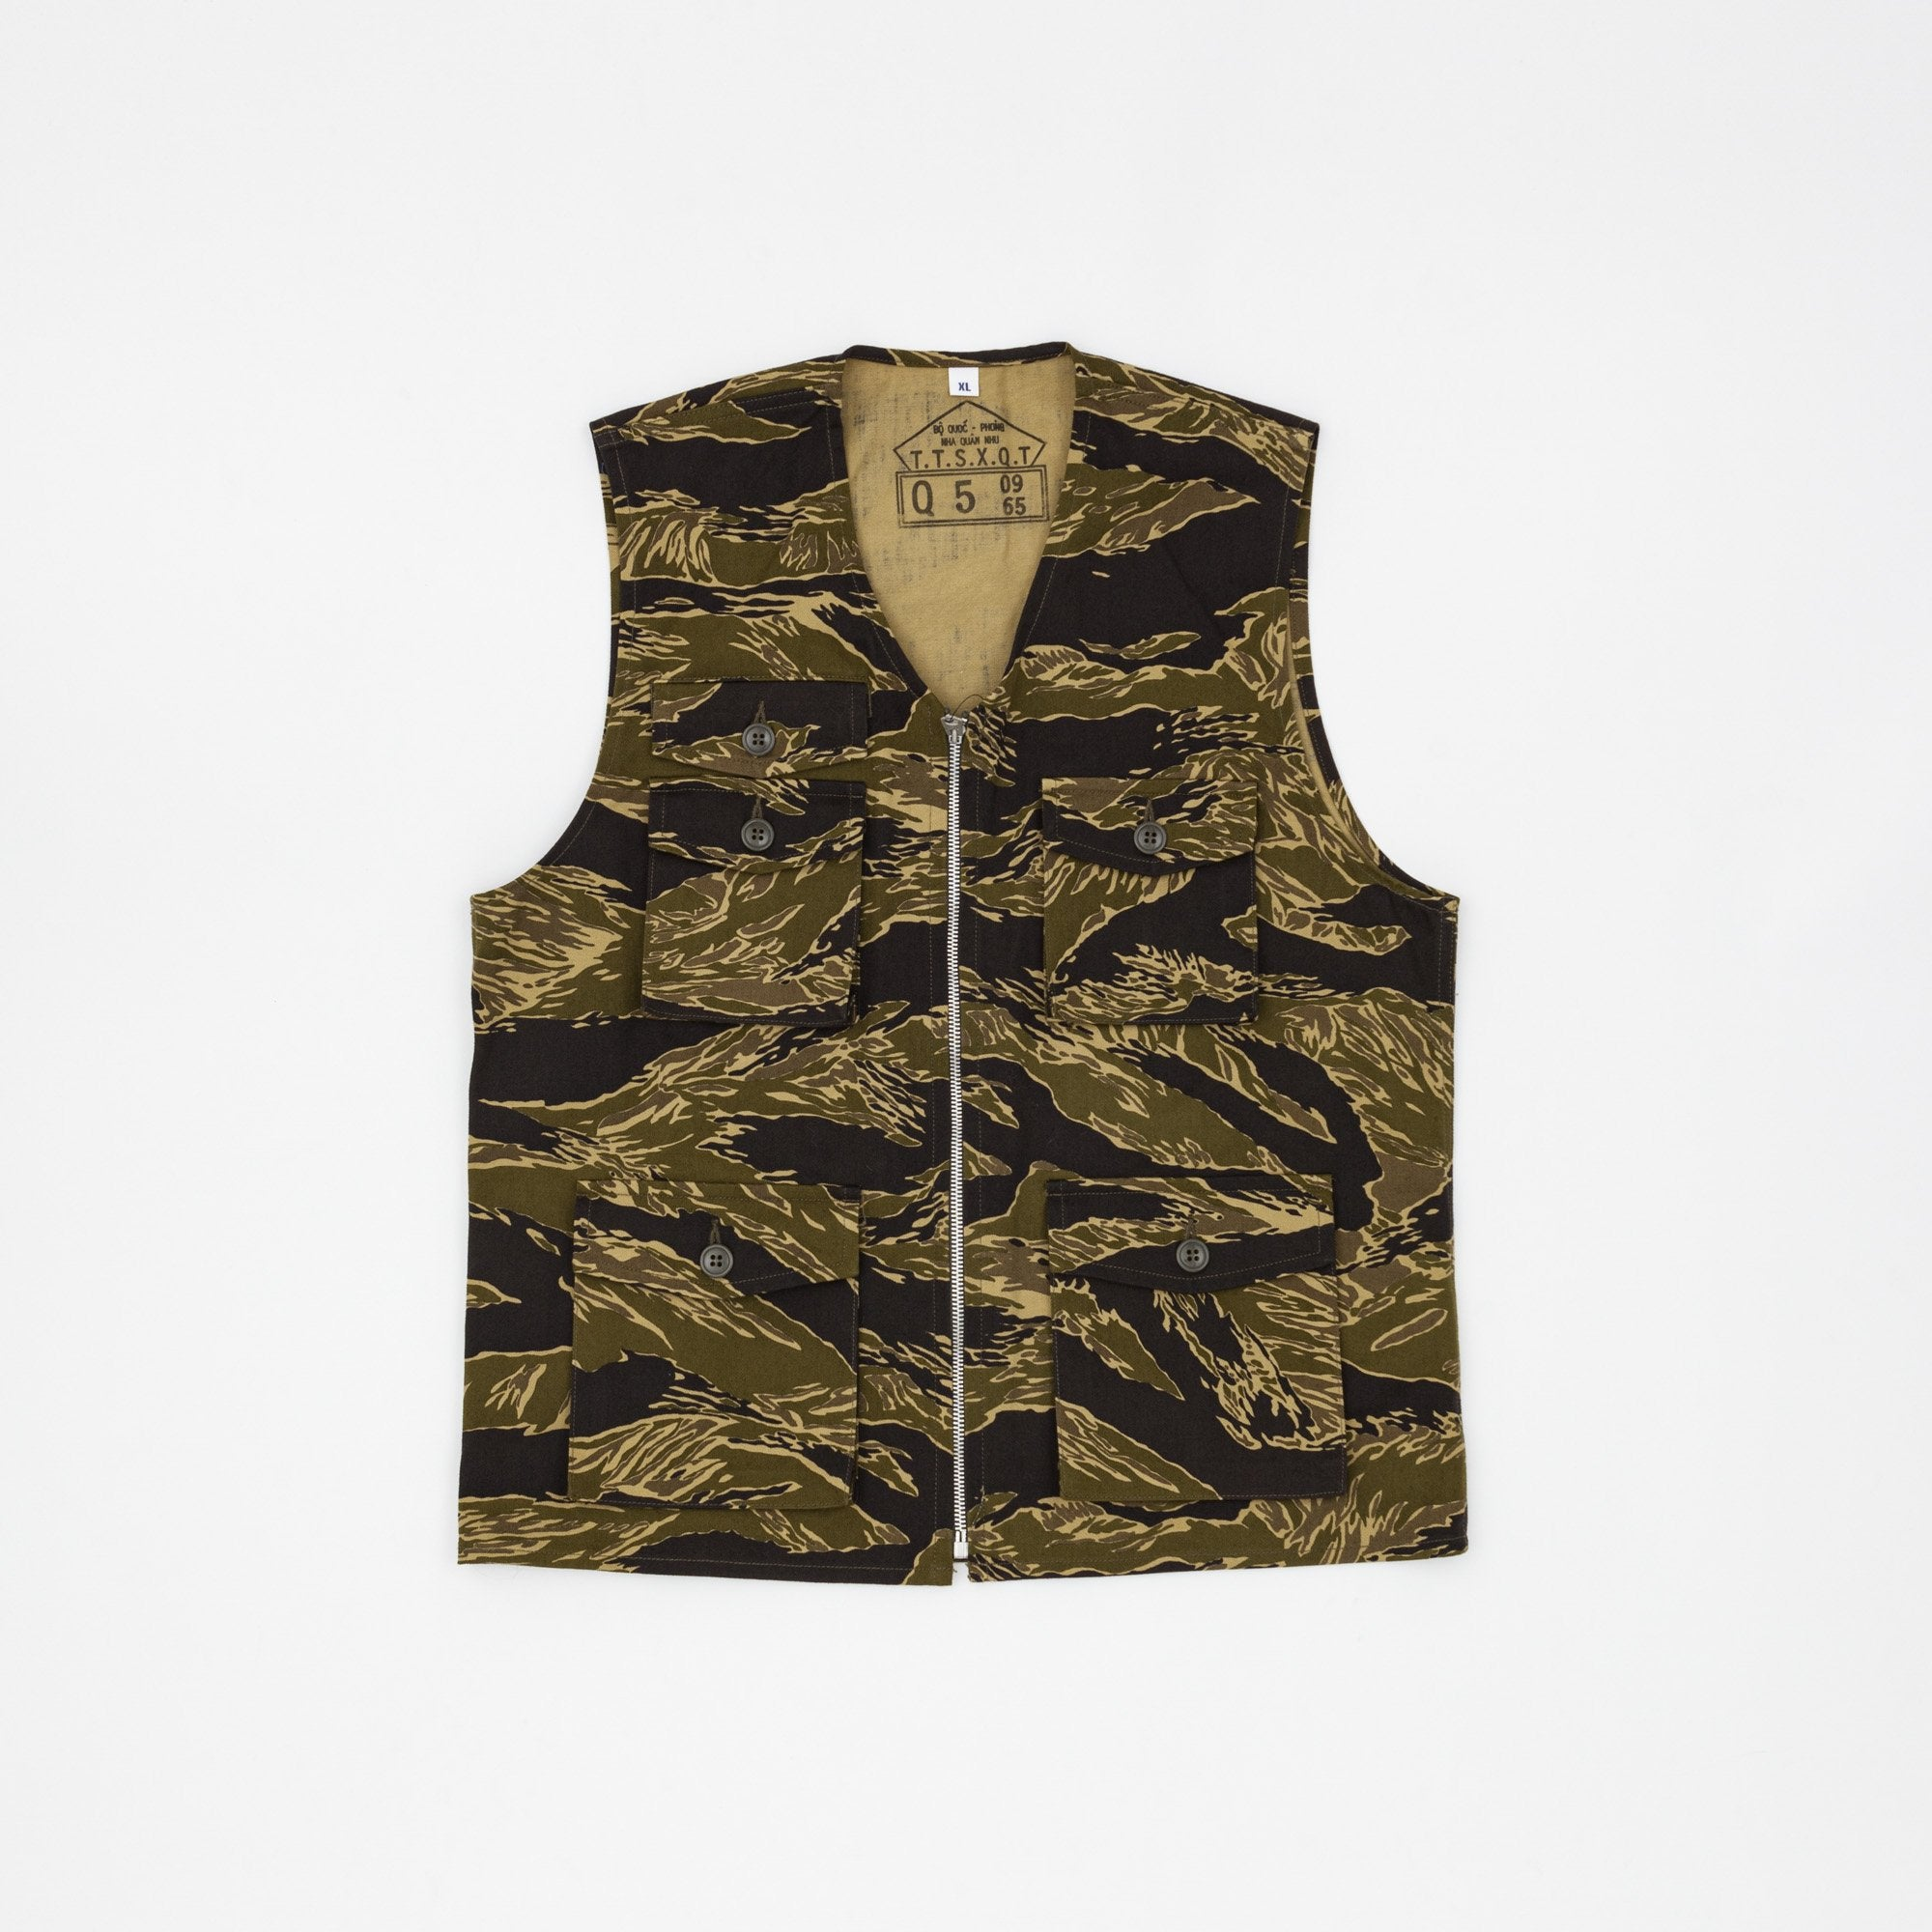 The Real McCoy's Tiger Camouflage Vest / John Wayne